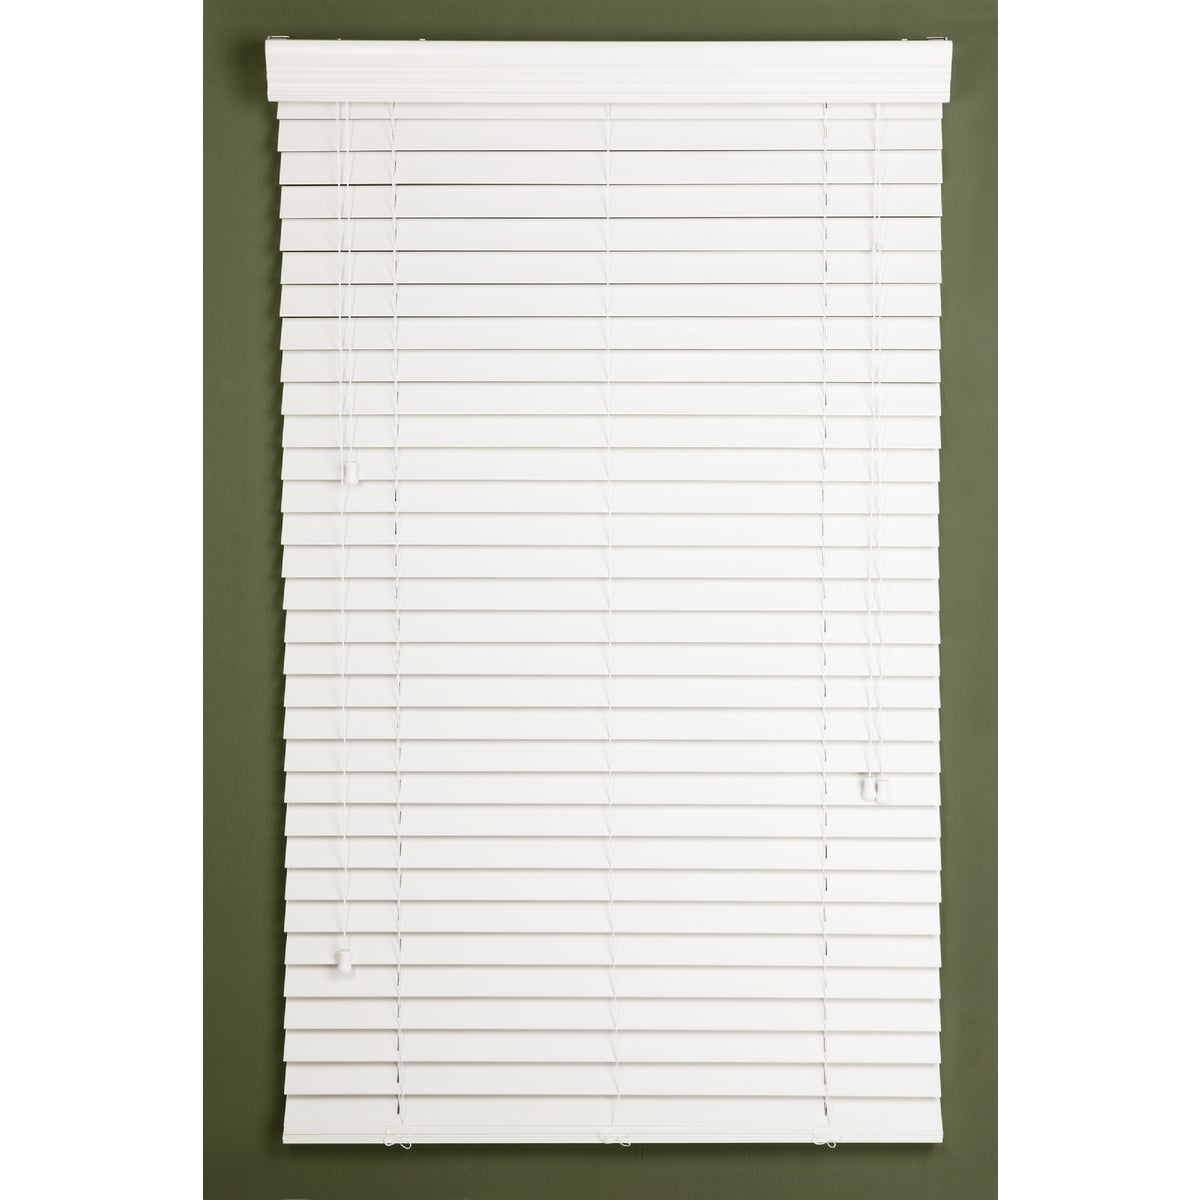 34X64 WHITE FAUX BLIND - 628128 by Lotus Wind Incom